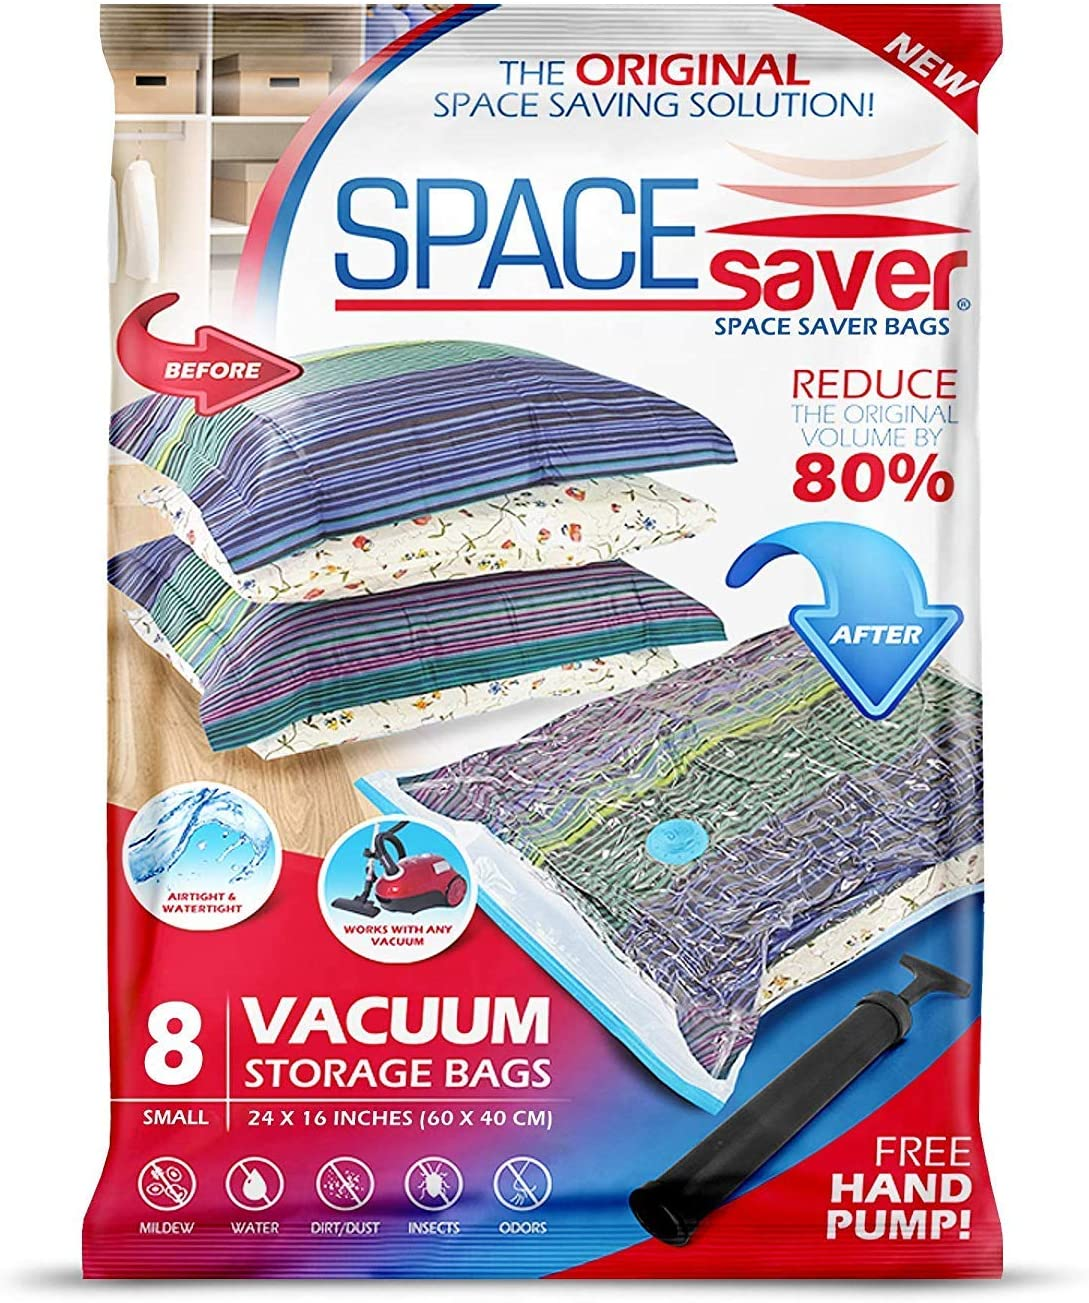 Spacesaver Premium Vacuum Storage Bags. 80% More Storage! Hand-Pump for Travel! Double-Zip Seal and Triple Seal Turbo-Valve for Max Space Saving! (Small 8 Pack)